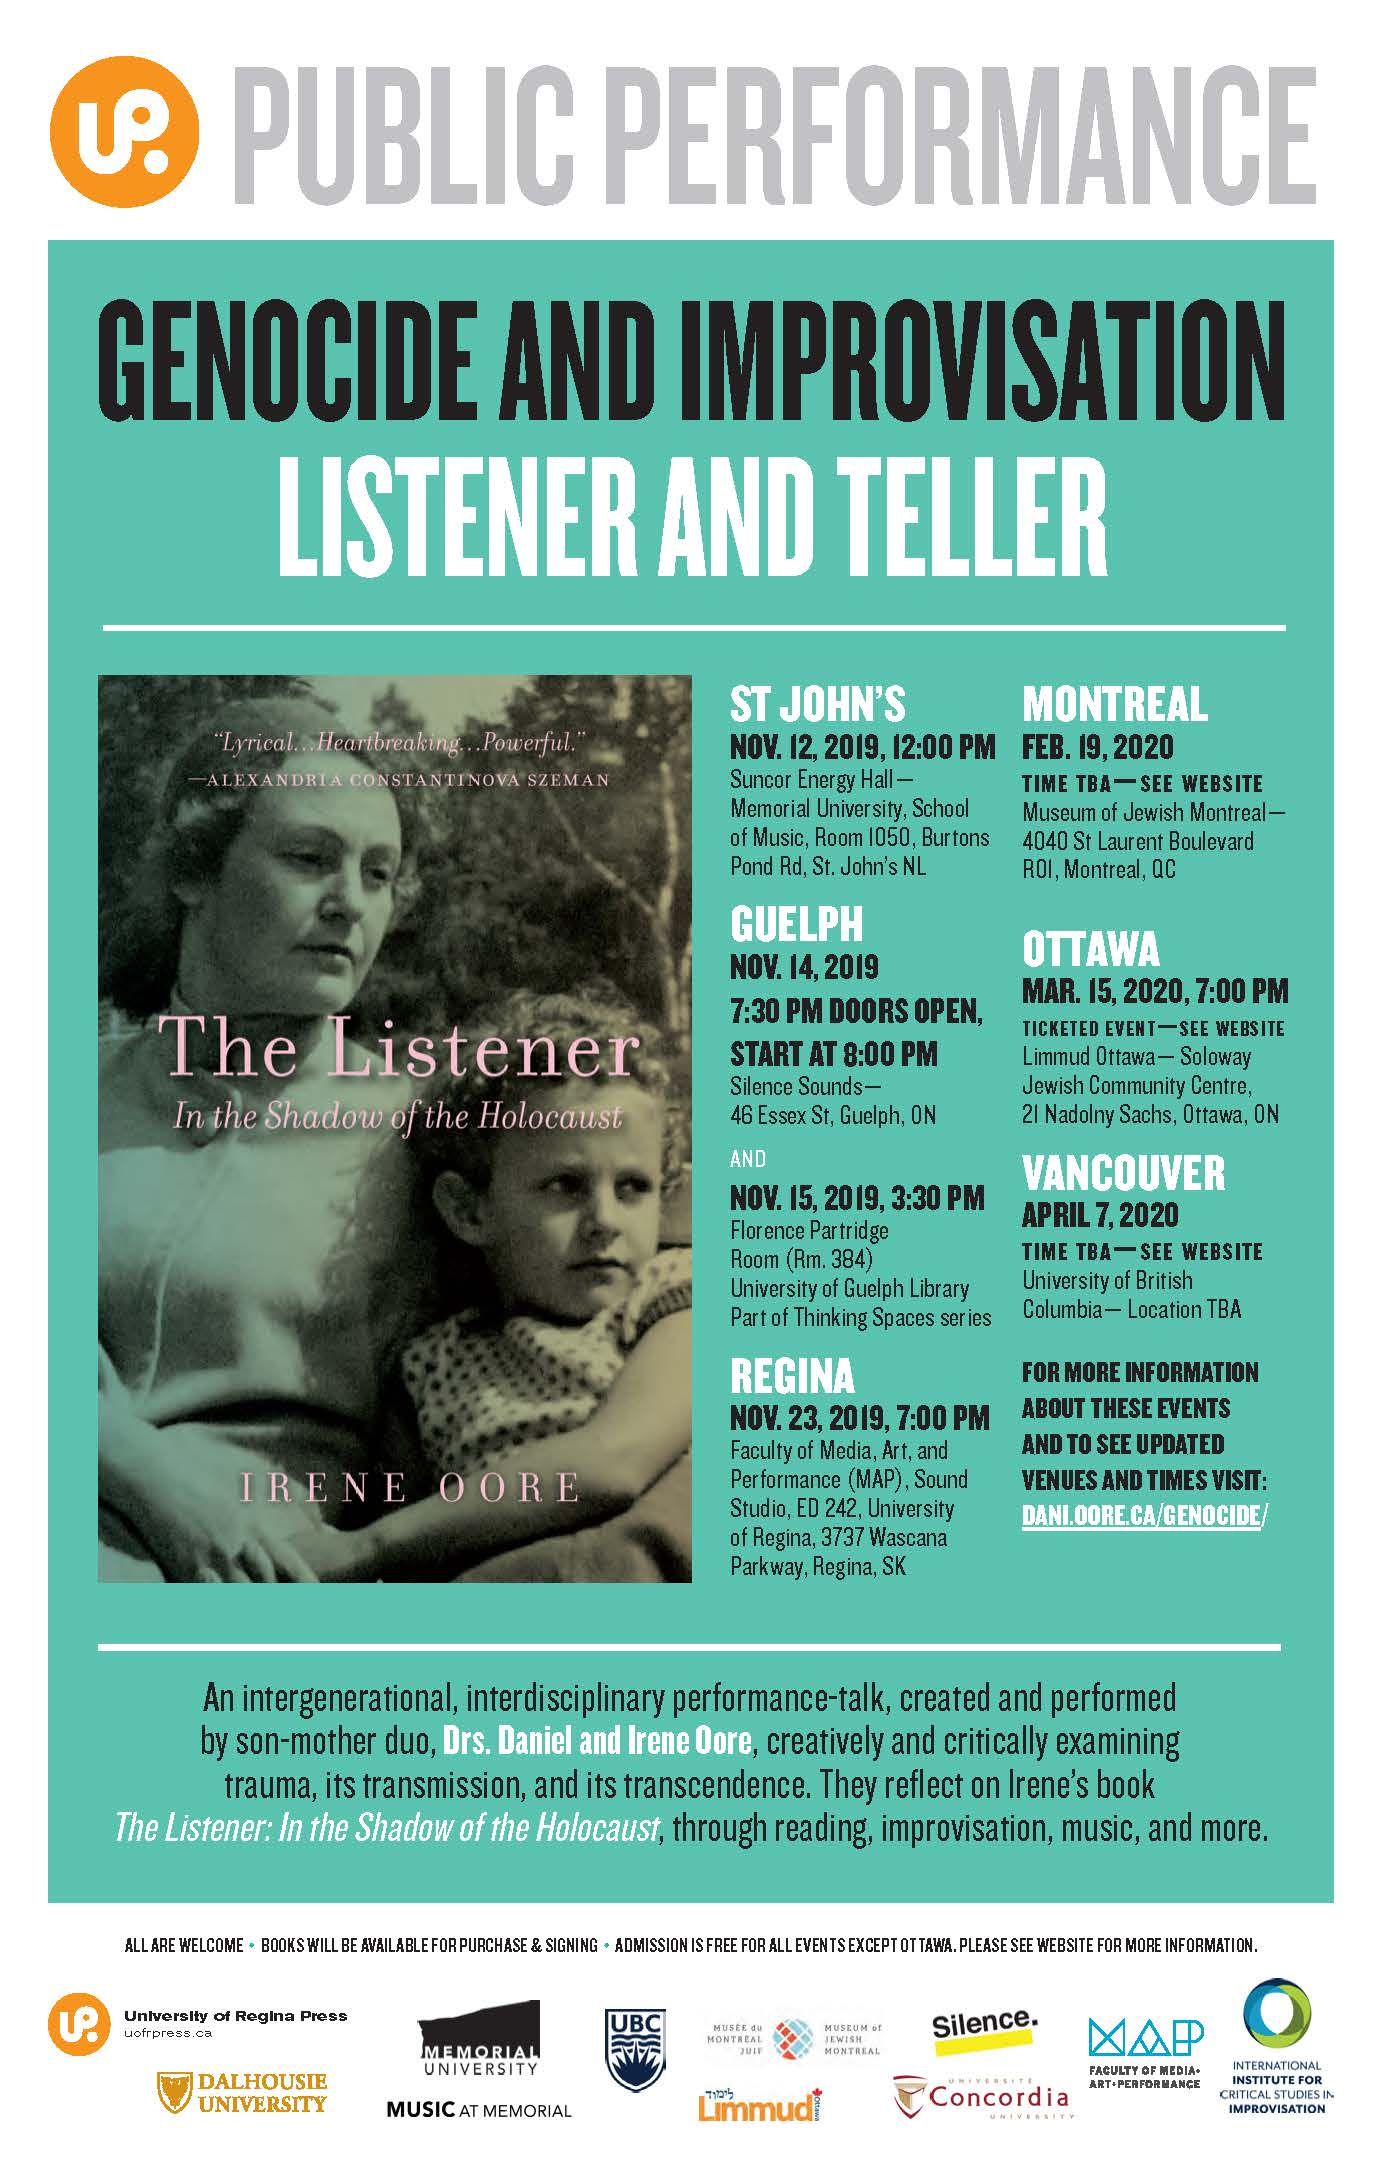 The Listener performance Poster with active links